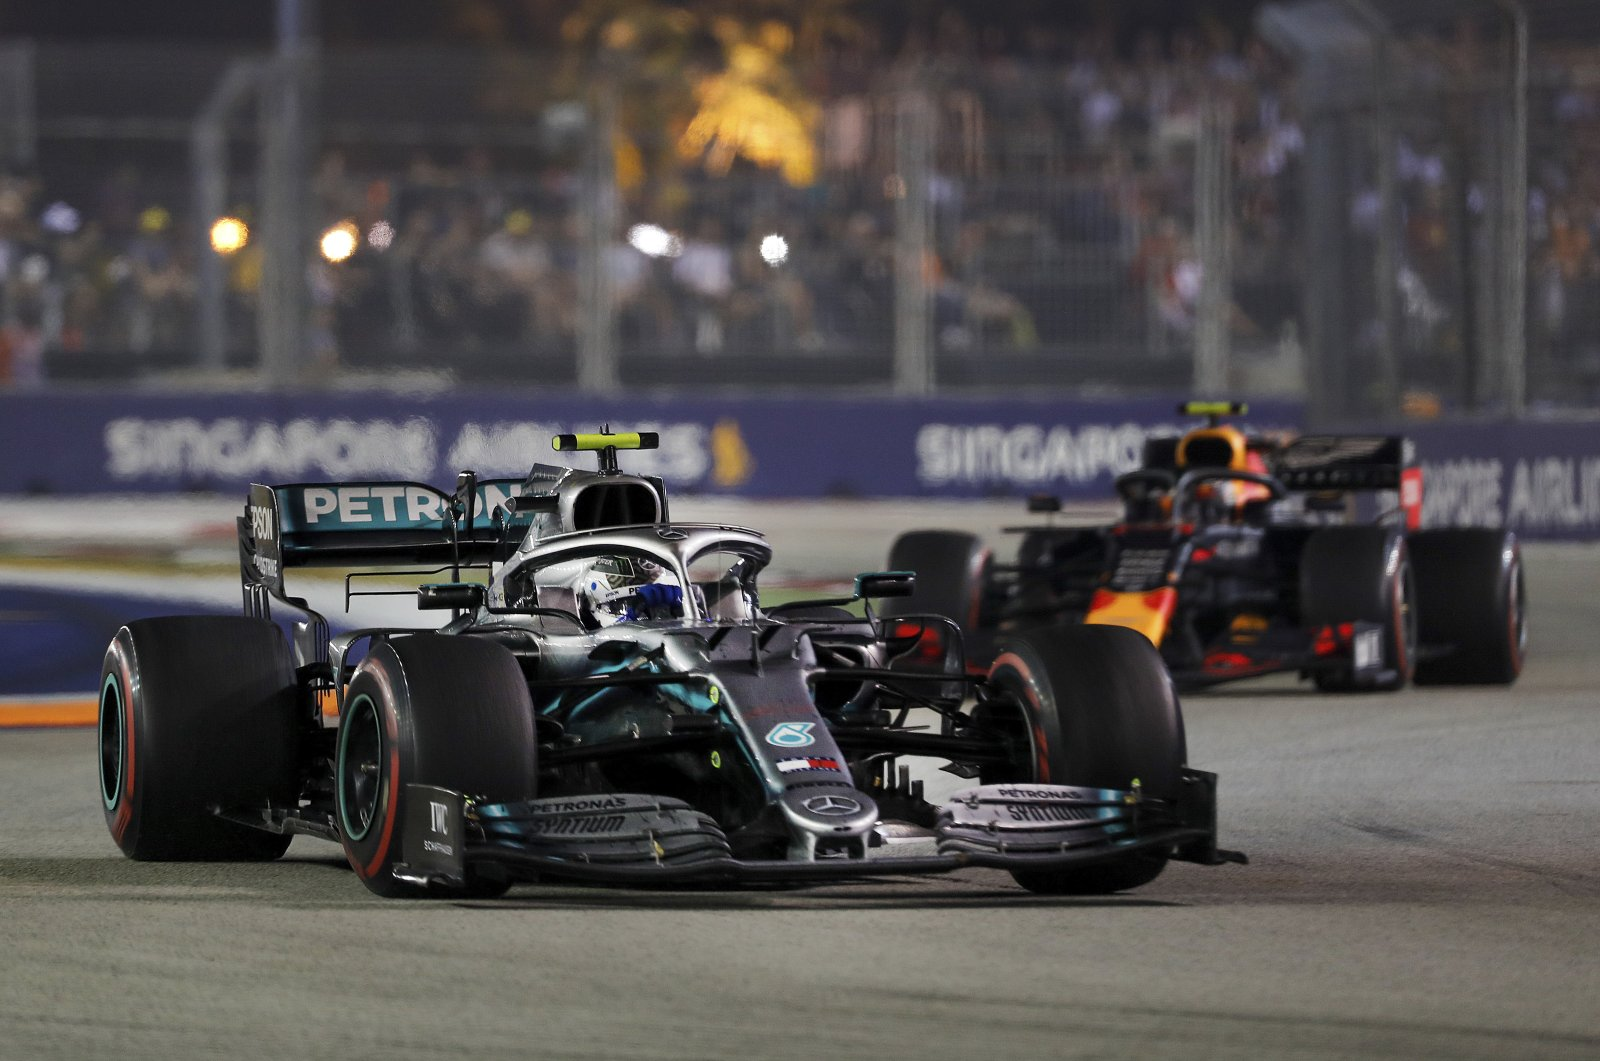 Mercedes driver Valtteri Bottas drives ahead of Red Bull's Alexander Albon during the Singapore Formula One GP in Singapore, Sept. 22, 2019. (AP Photo)